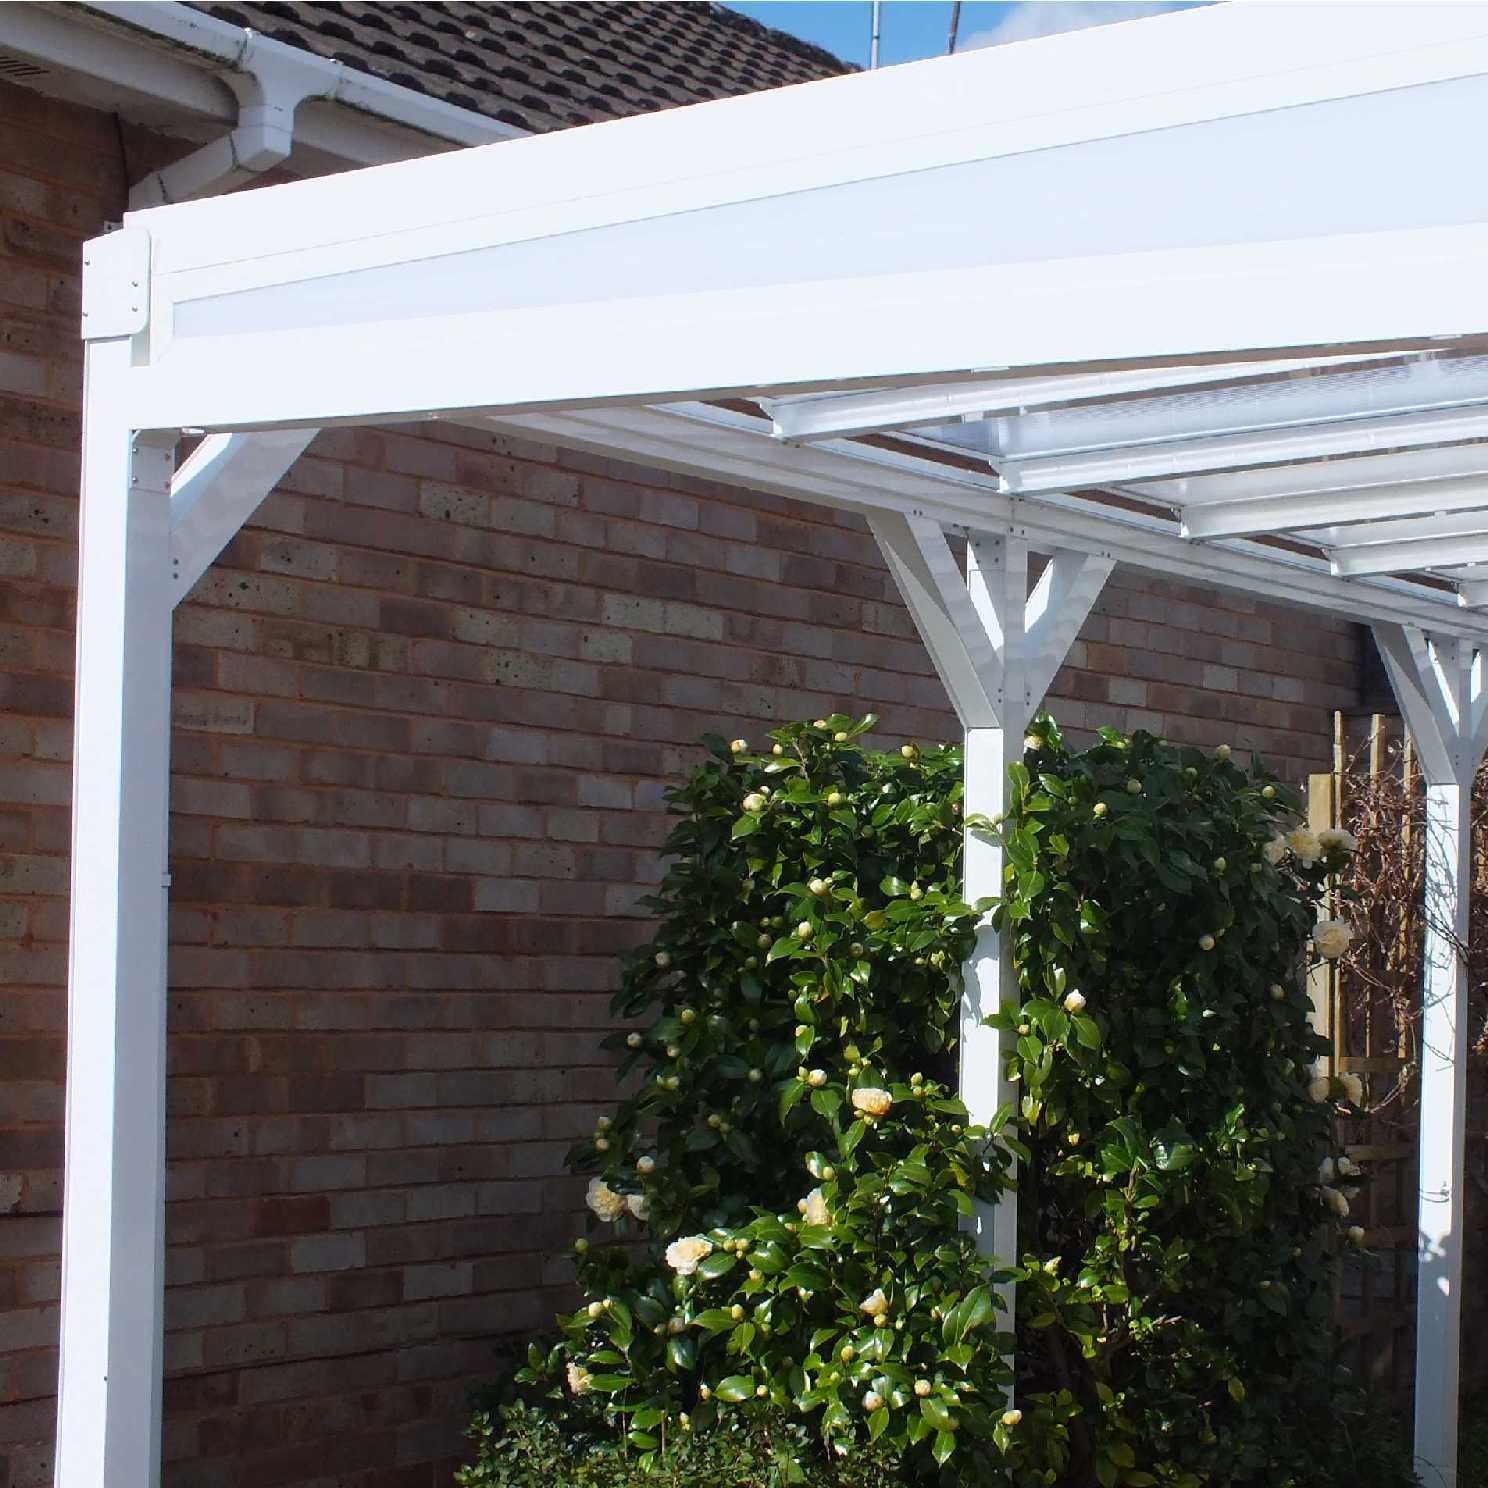 Omega Smart Lean-To Canopy with 16mm Polycarbonate Glazing - 10.6m (W) x 3.5m (P), (5) Supporting Posts from Omega Build